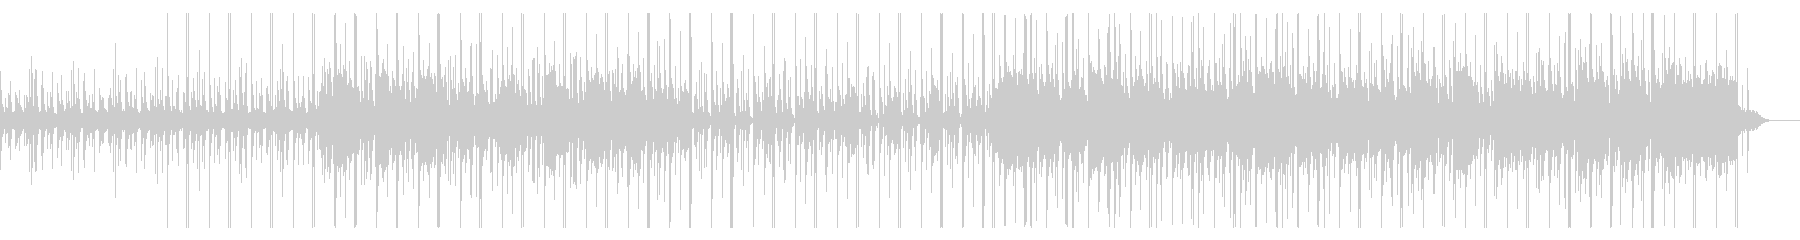 Chilly BGM with an impressive steel drum's unreproduced waveform